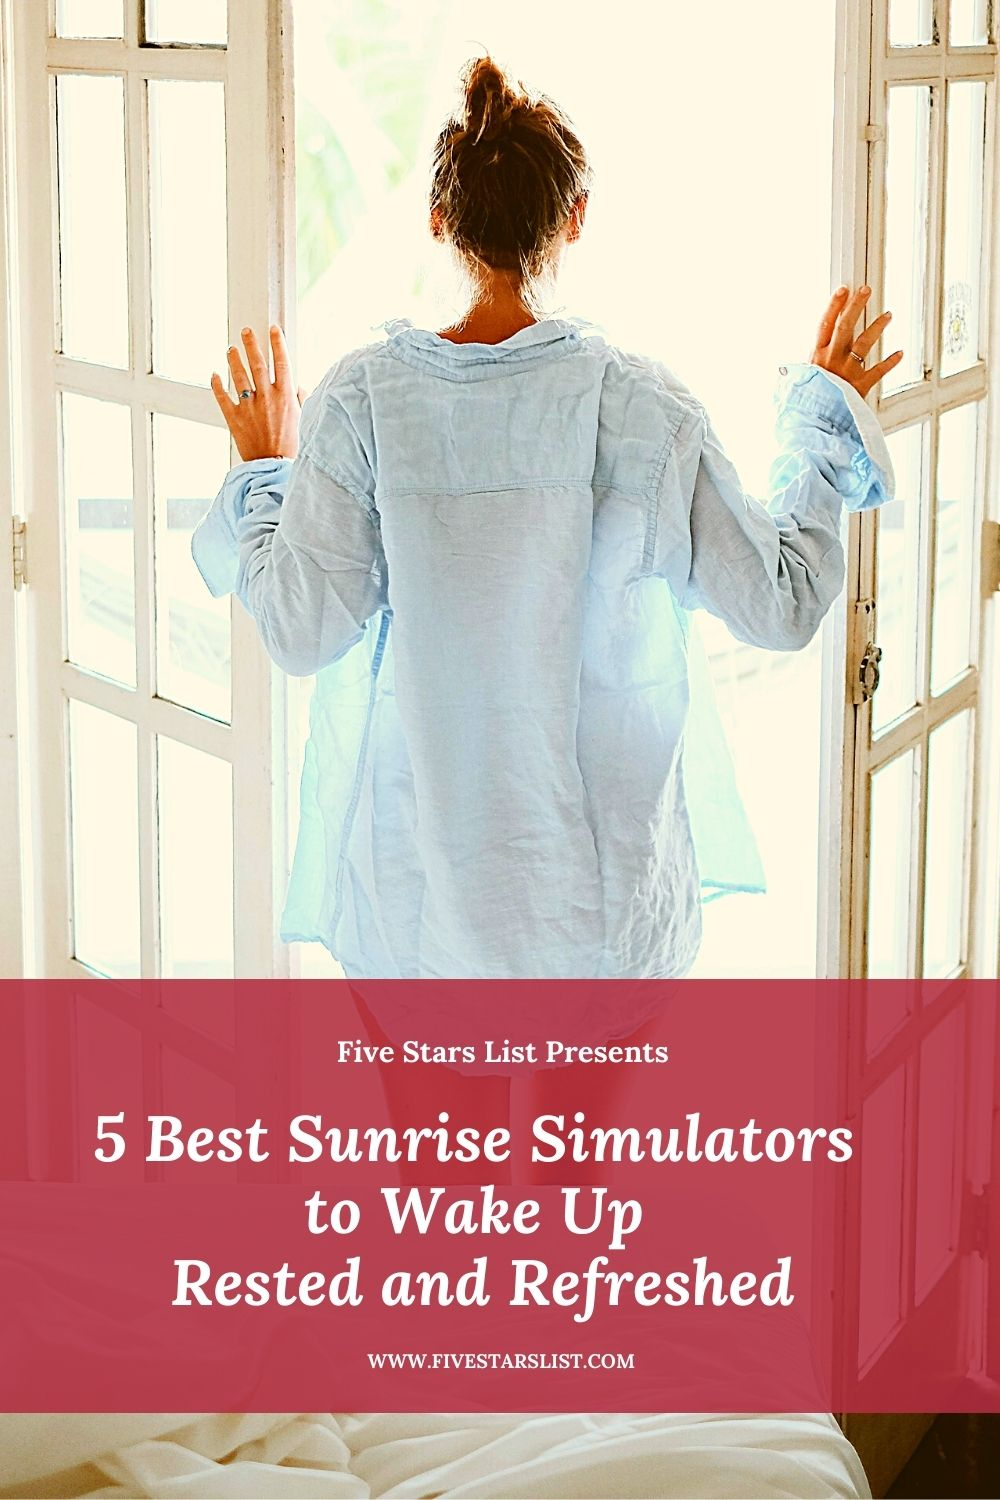 5 Best Sunrise Simulators to Wake Up Rested and Refreshed